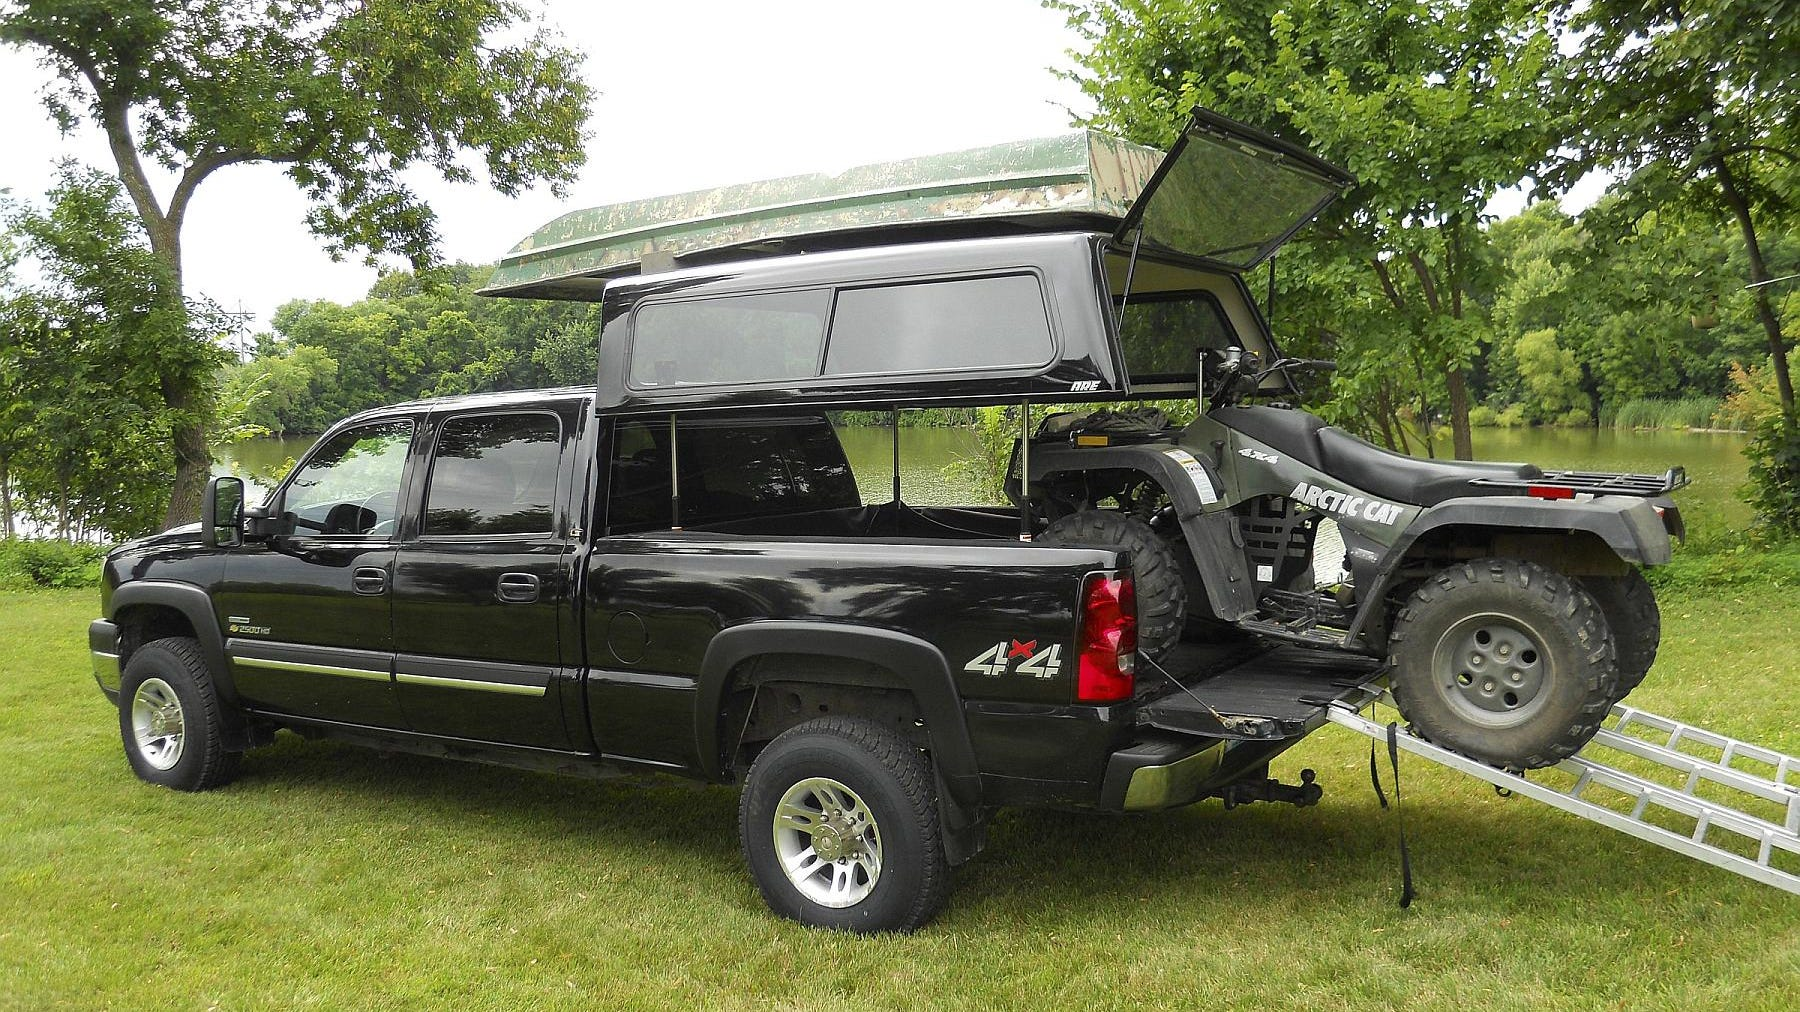 - EZ Lift Lets Truck Bed Cap Rise, Convert To Camper